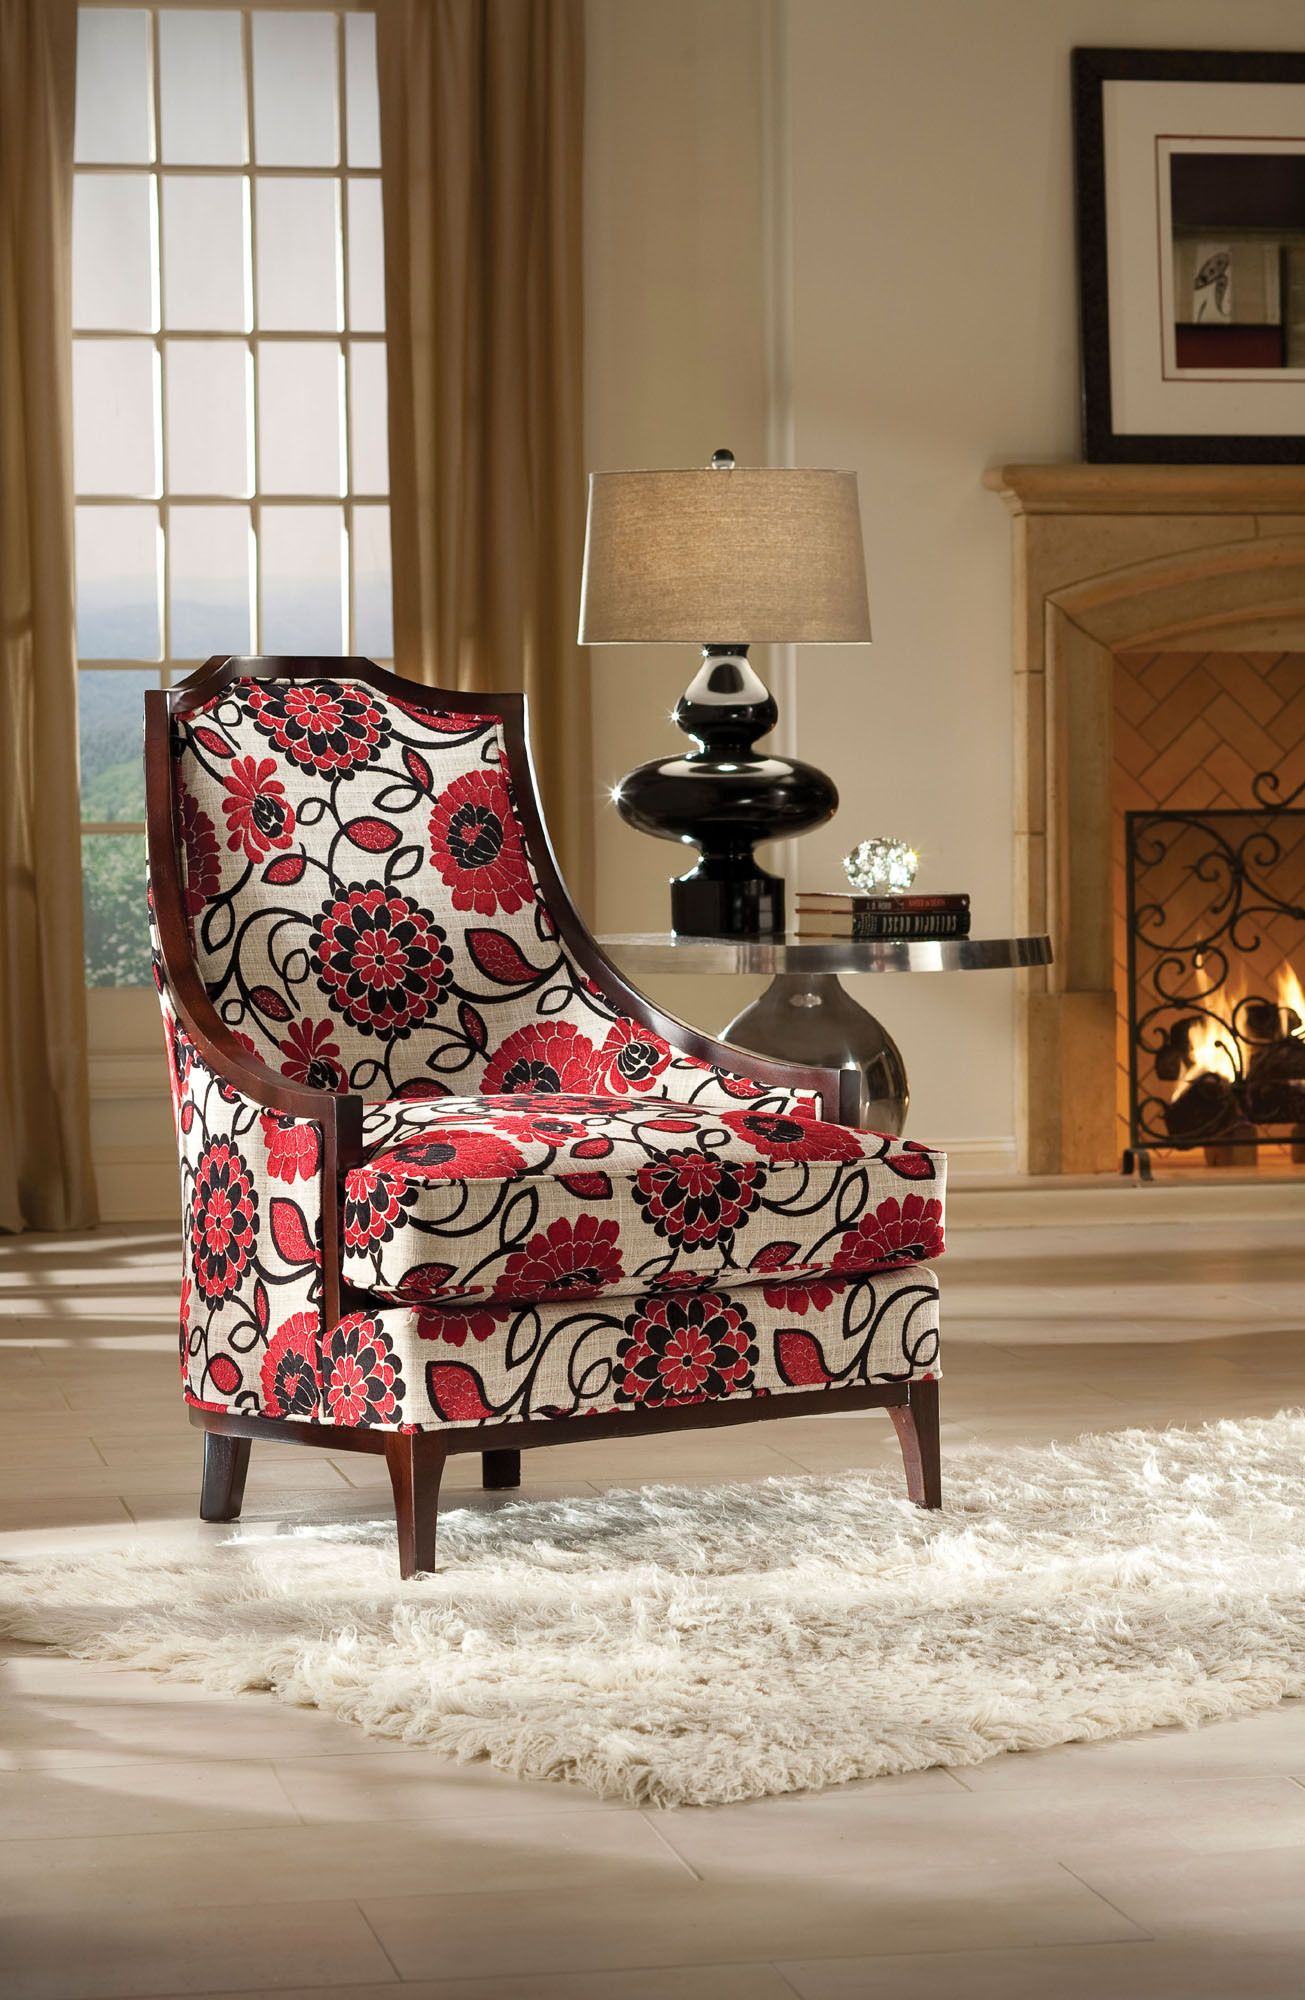 Charmant Lounge Chair | Fairfield Chair Company | Home Gallery Stores